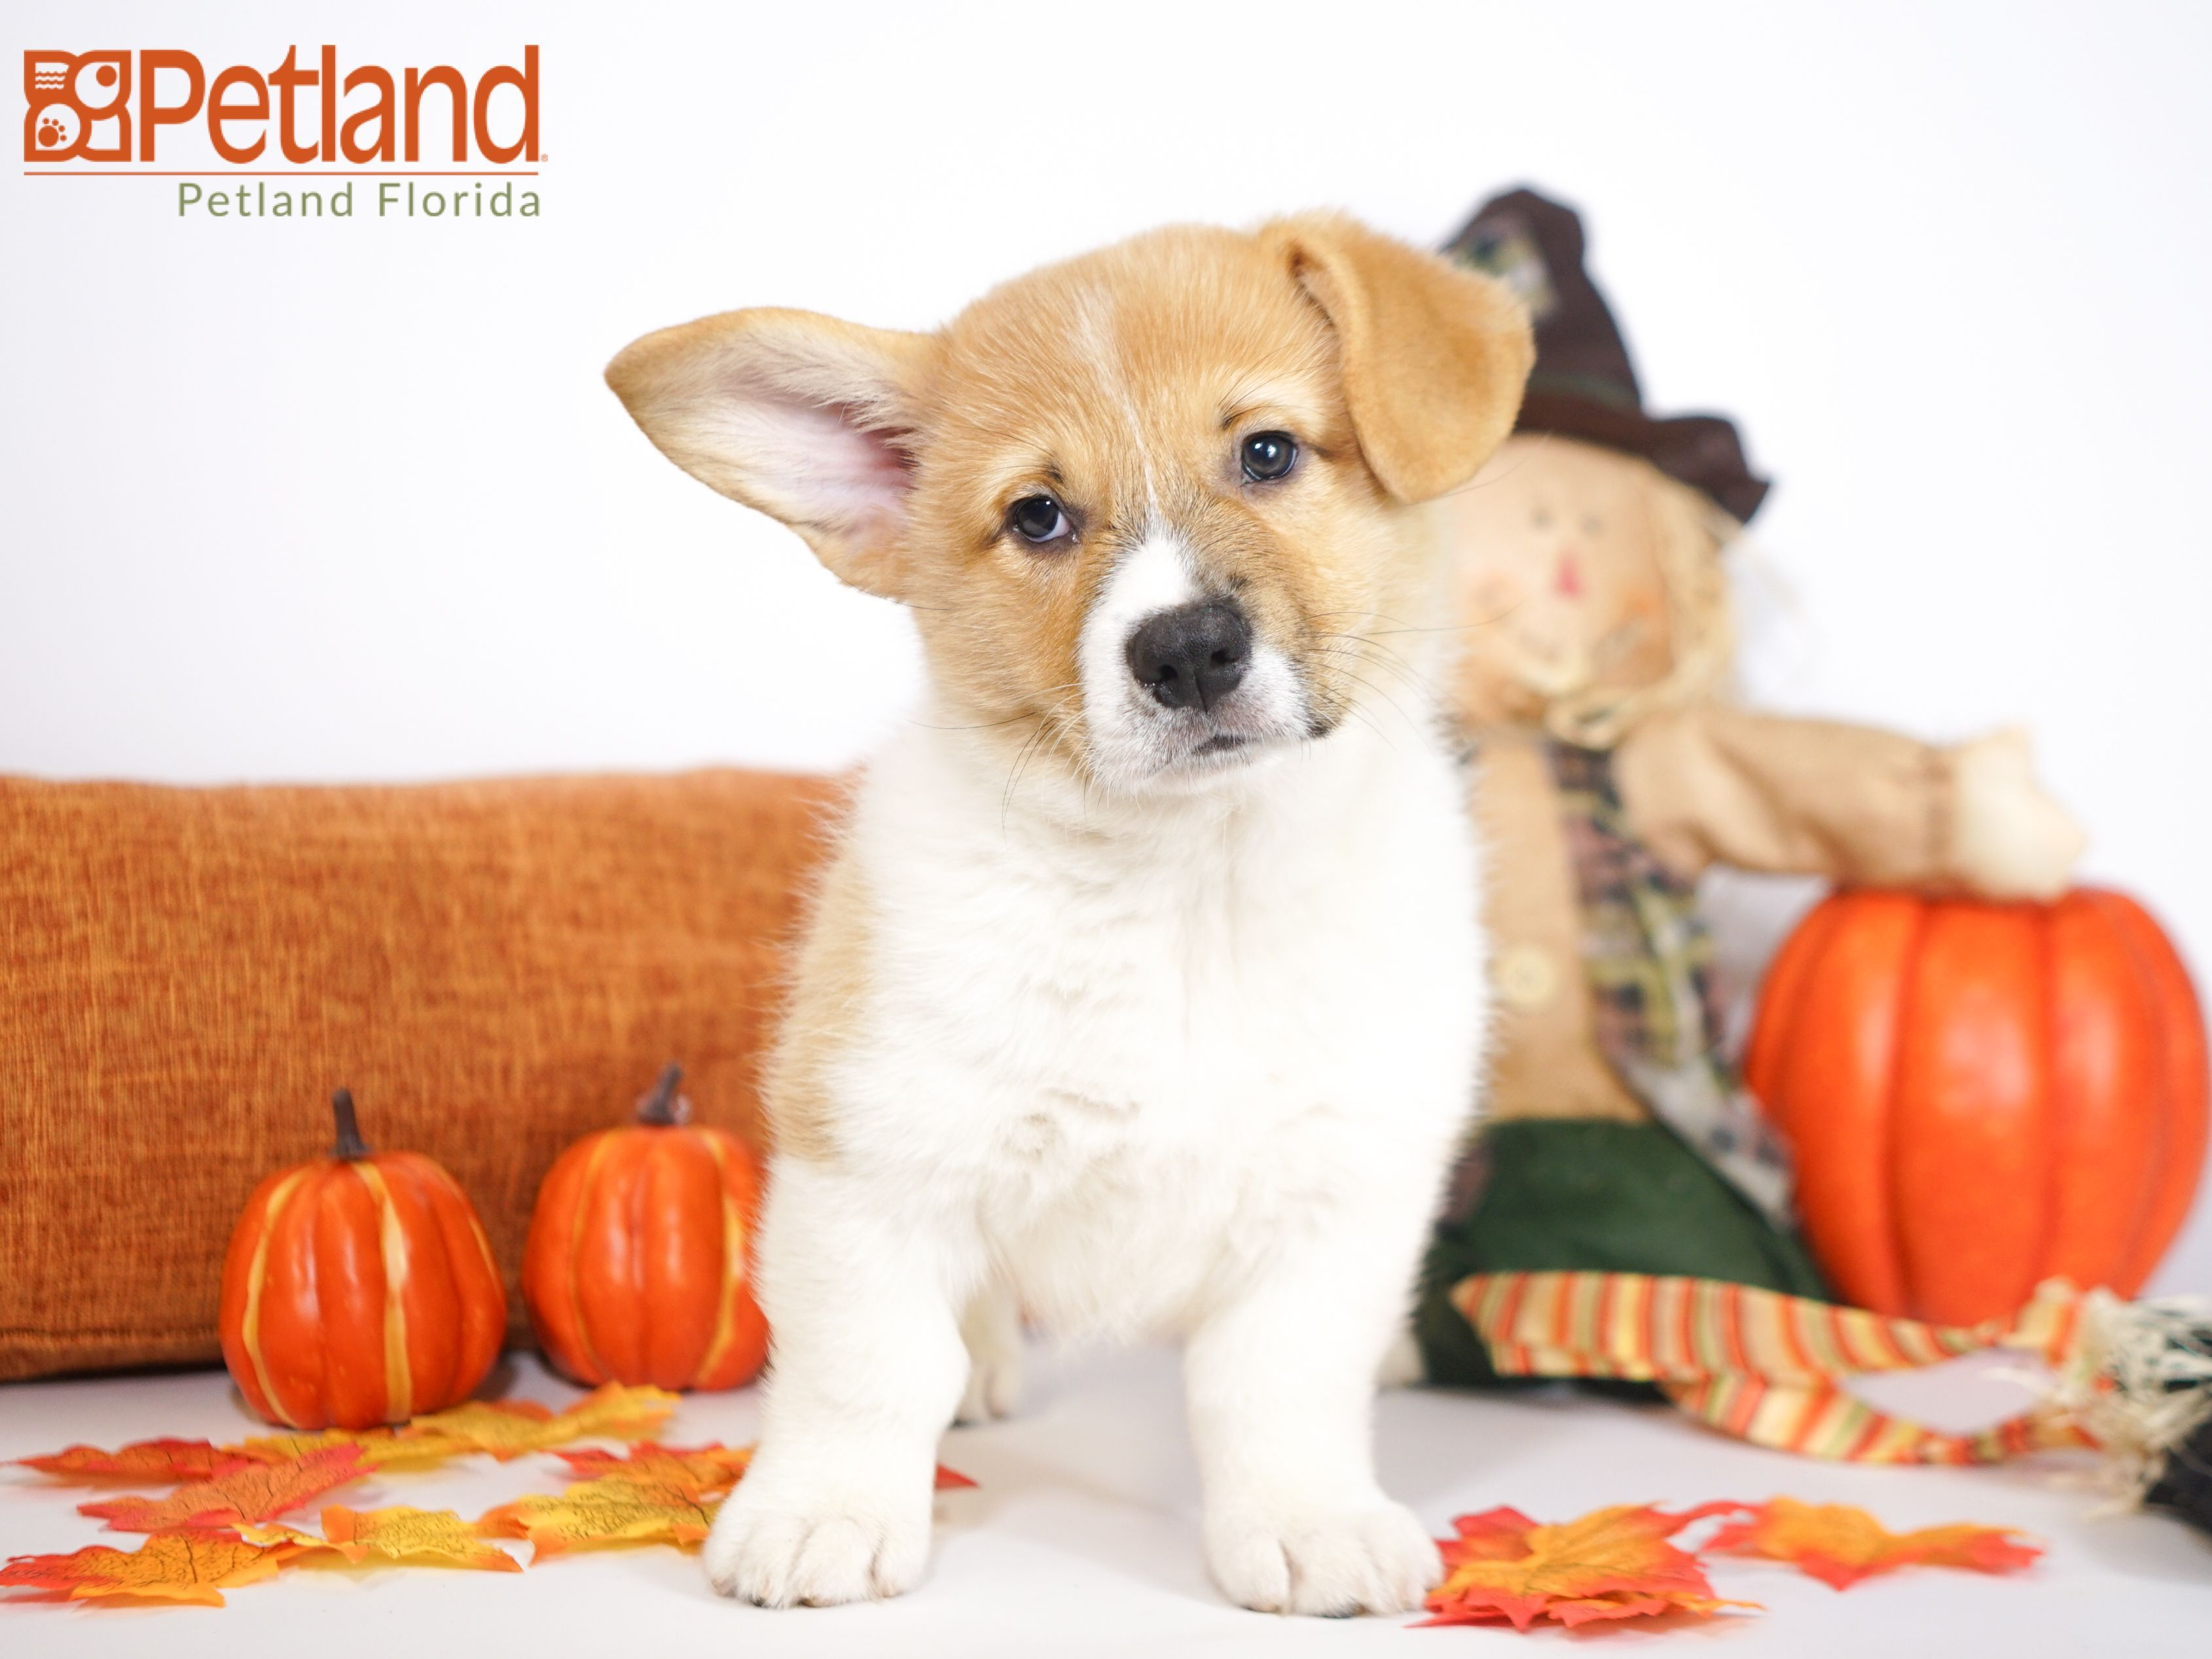 Puppies For Sale With Images Puppy Friends Puppies Pembroke Welsh Corgi Puppies